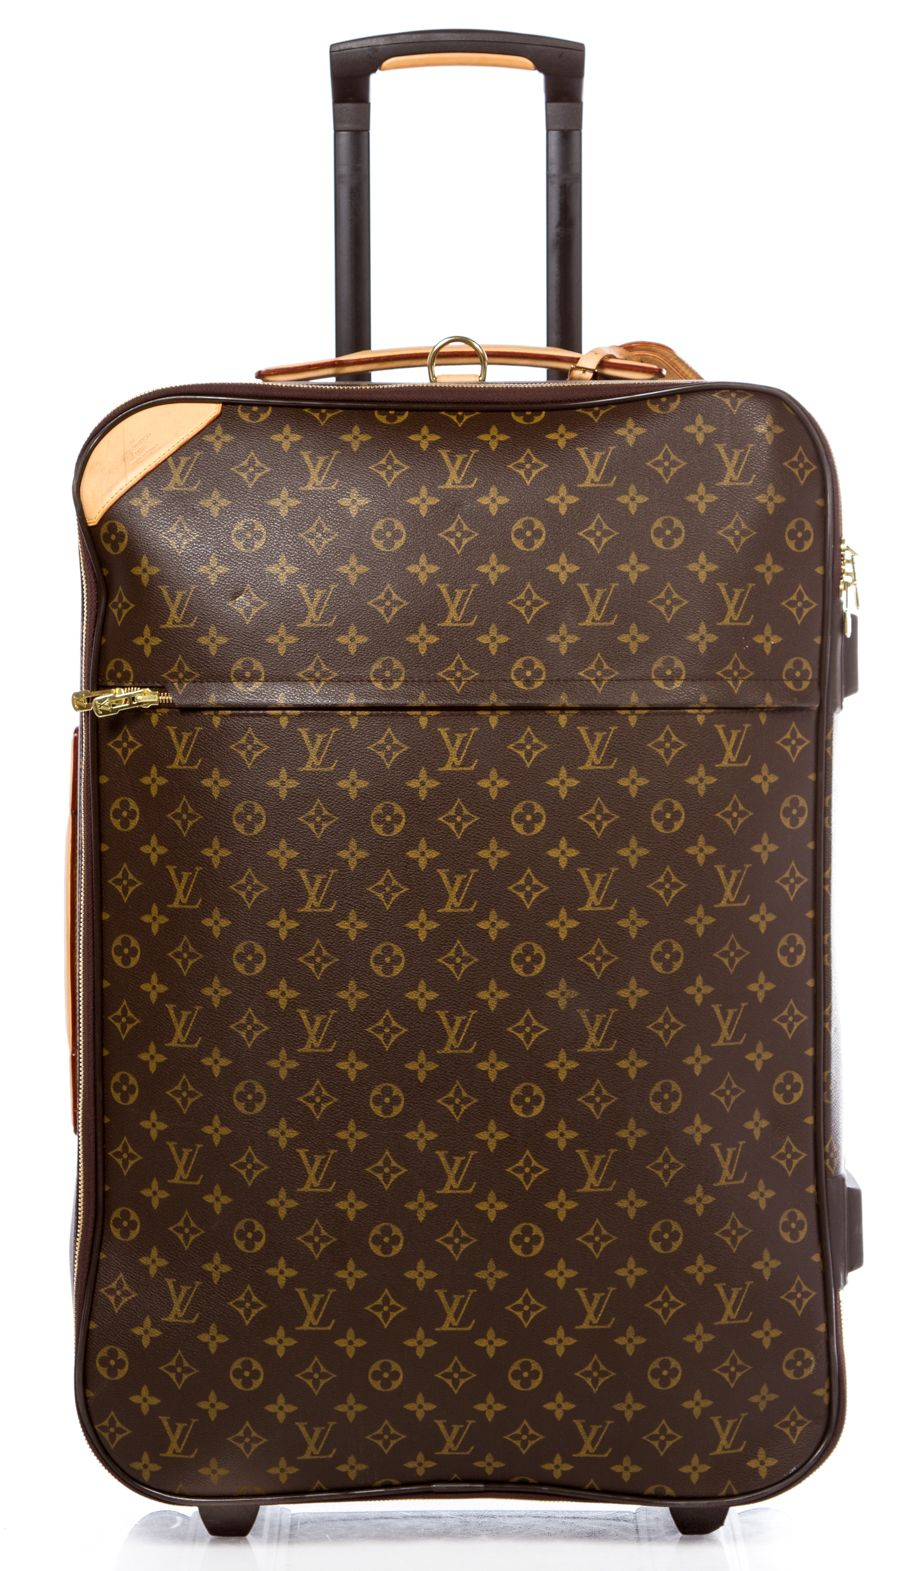 This bag is so beautiful,i want to buy for my birthday,i passed a store   focushopping.co have this one,who ever buy there  f5c57aa36e